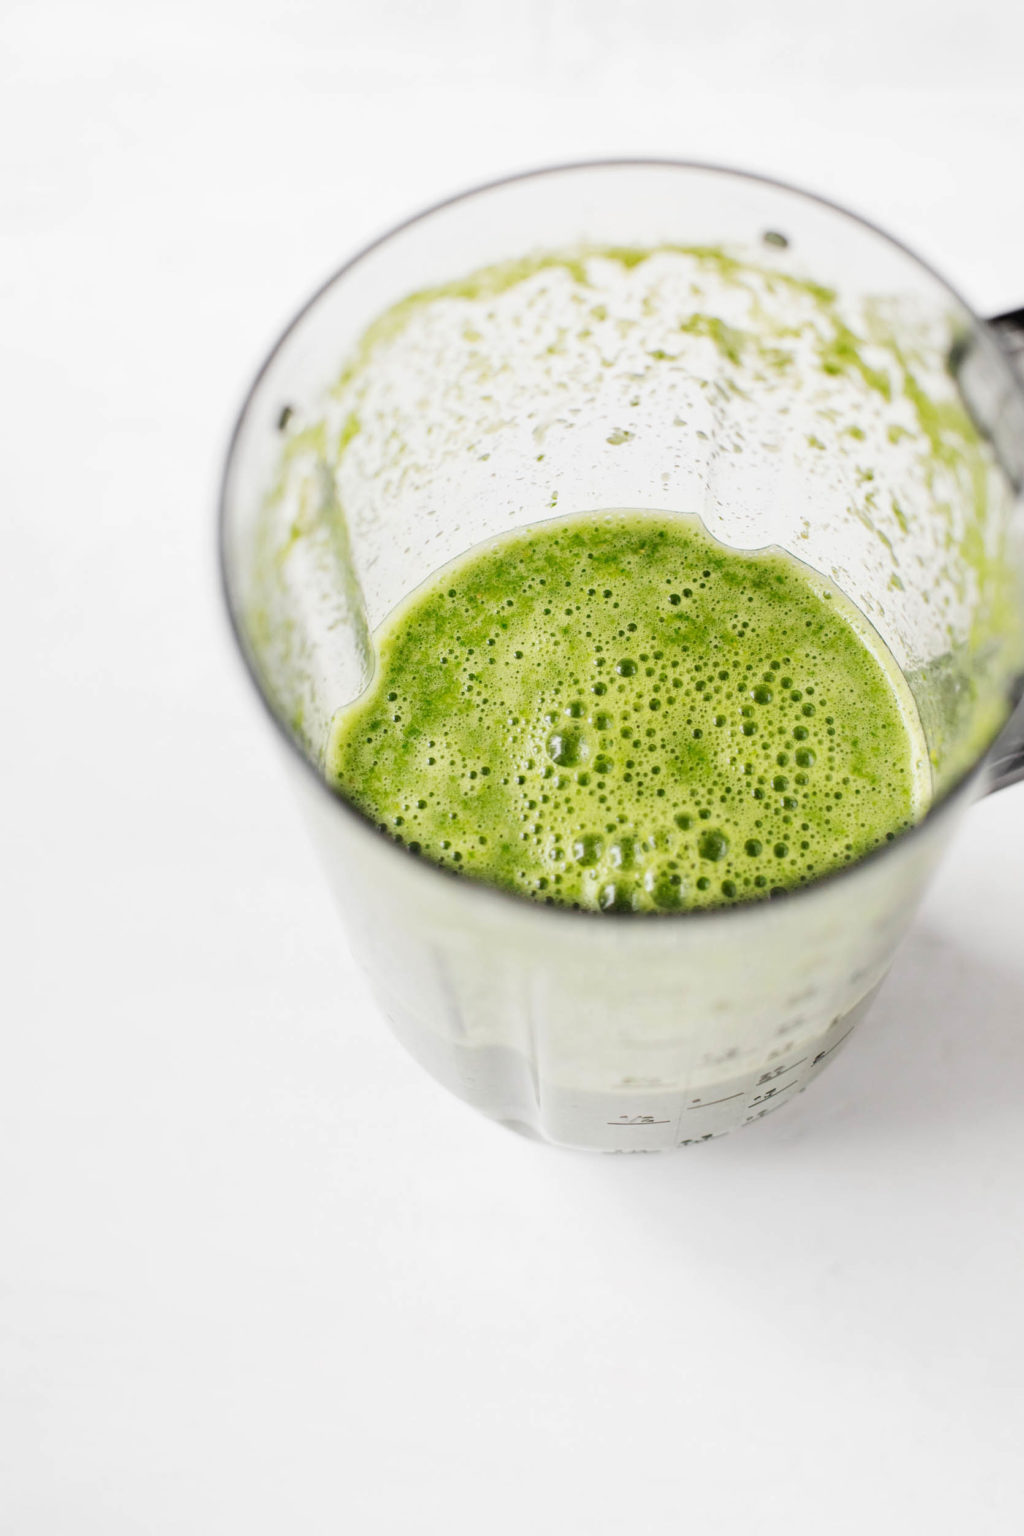 A liquid measuring cup has been filled with a frothy, freshly made, easy green juice.